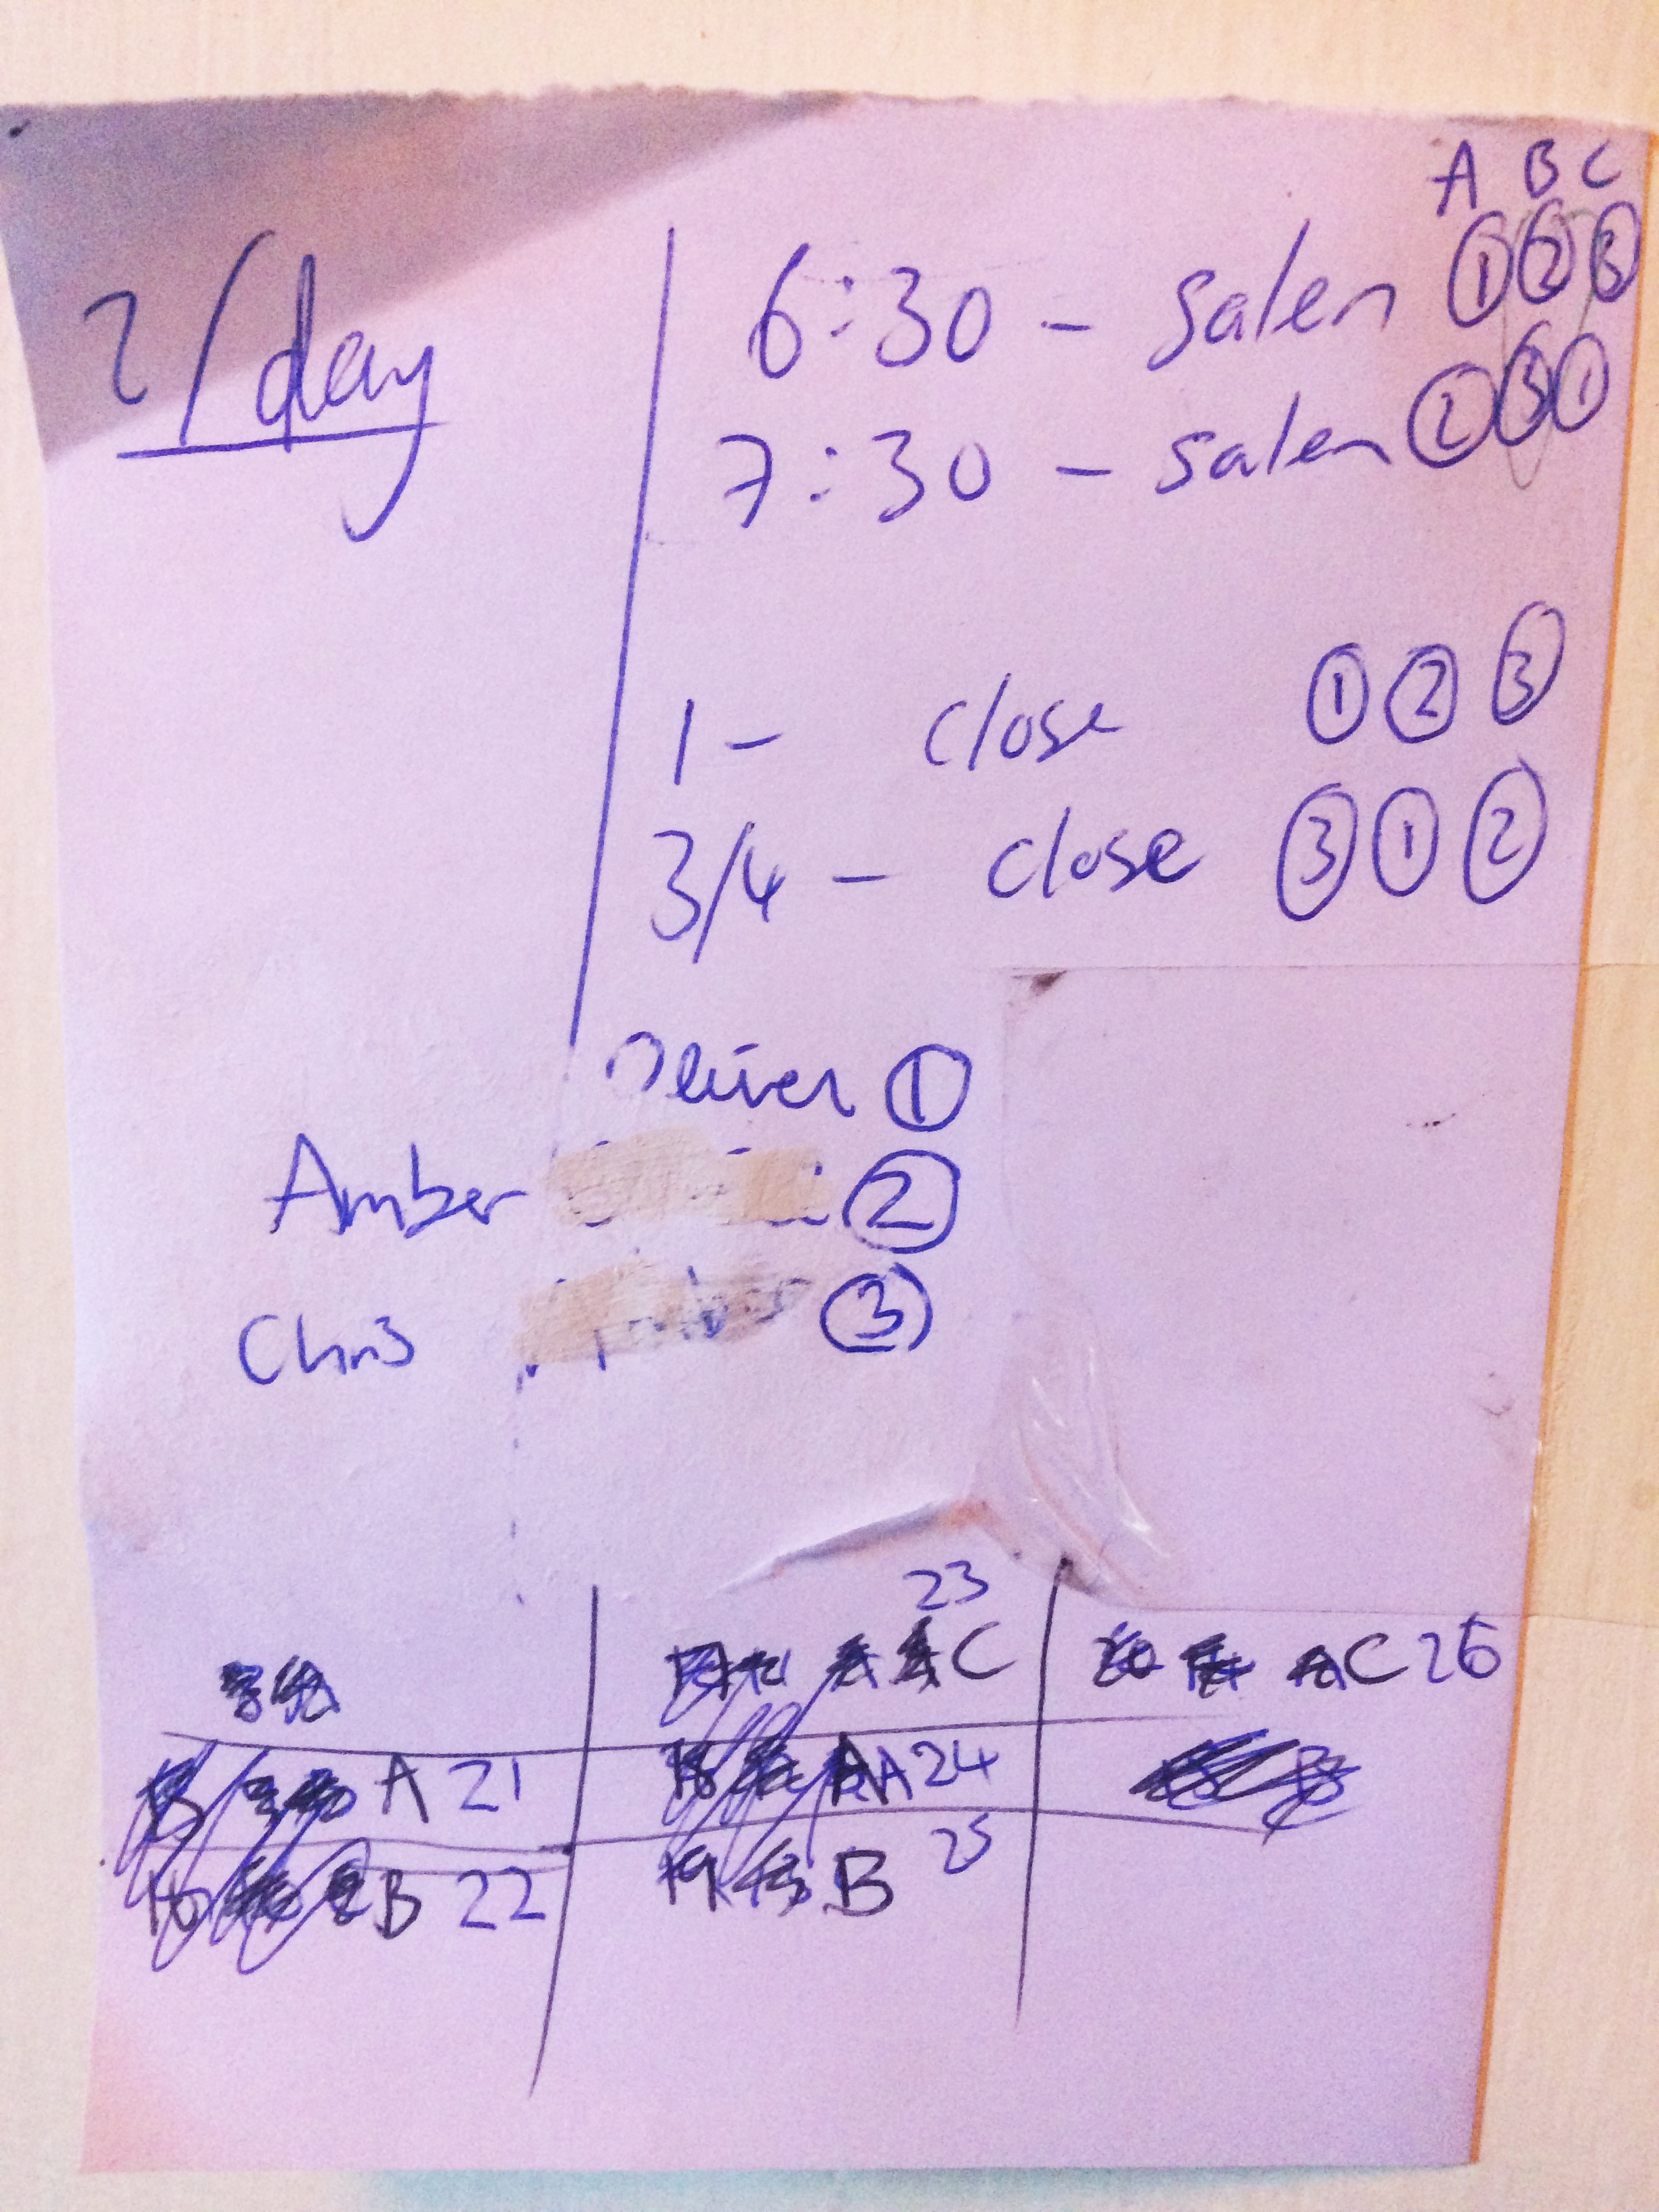 Our very official work rotation schedule.